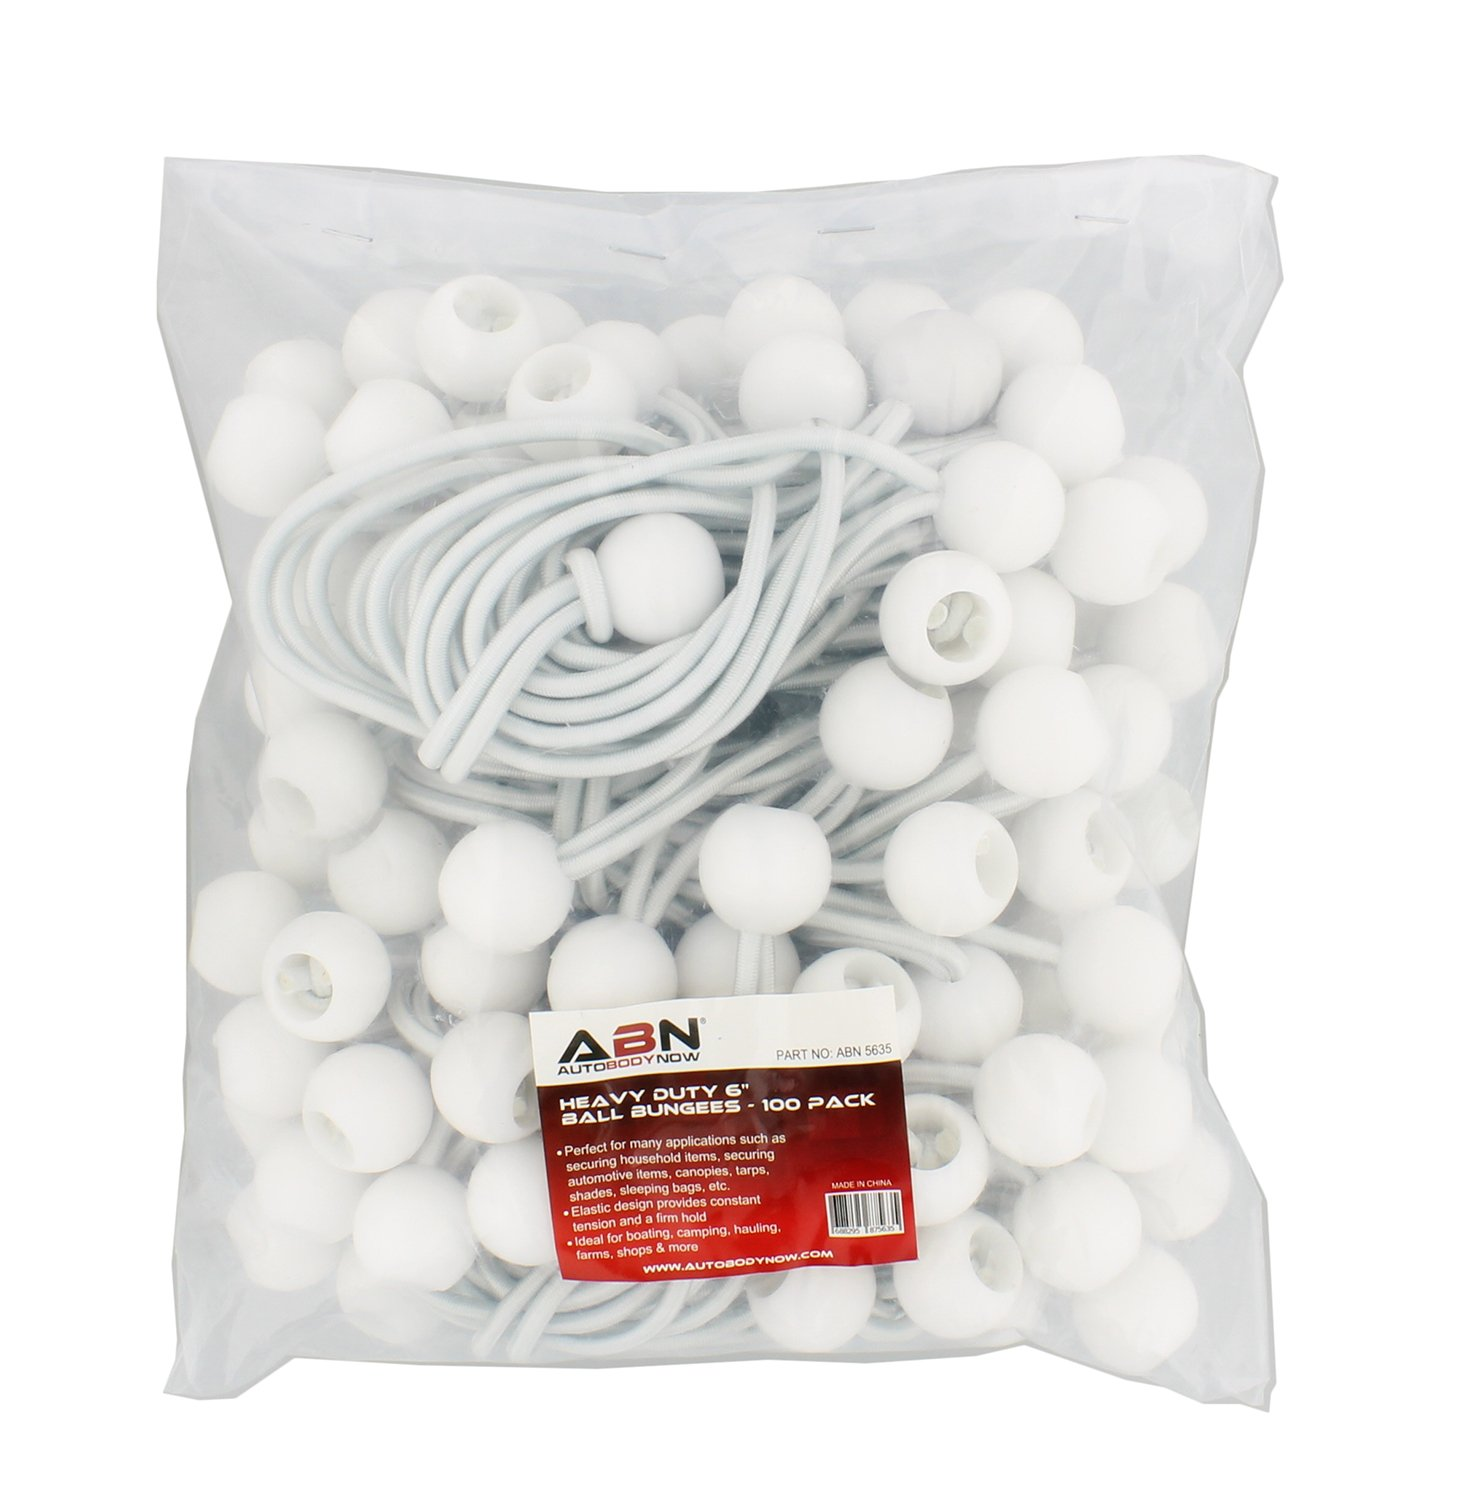 "Ball Bungee Cord 100 Pack ABN 6/"" Inch White Bungee Loops Small Bungee Cords with Balls Bungee Tie Downs"